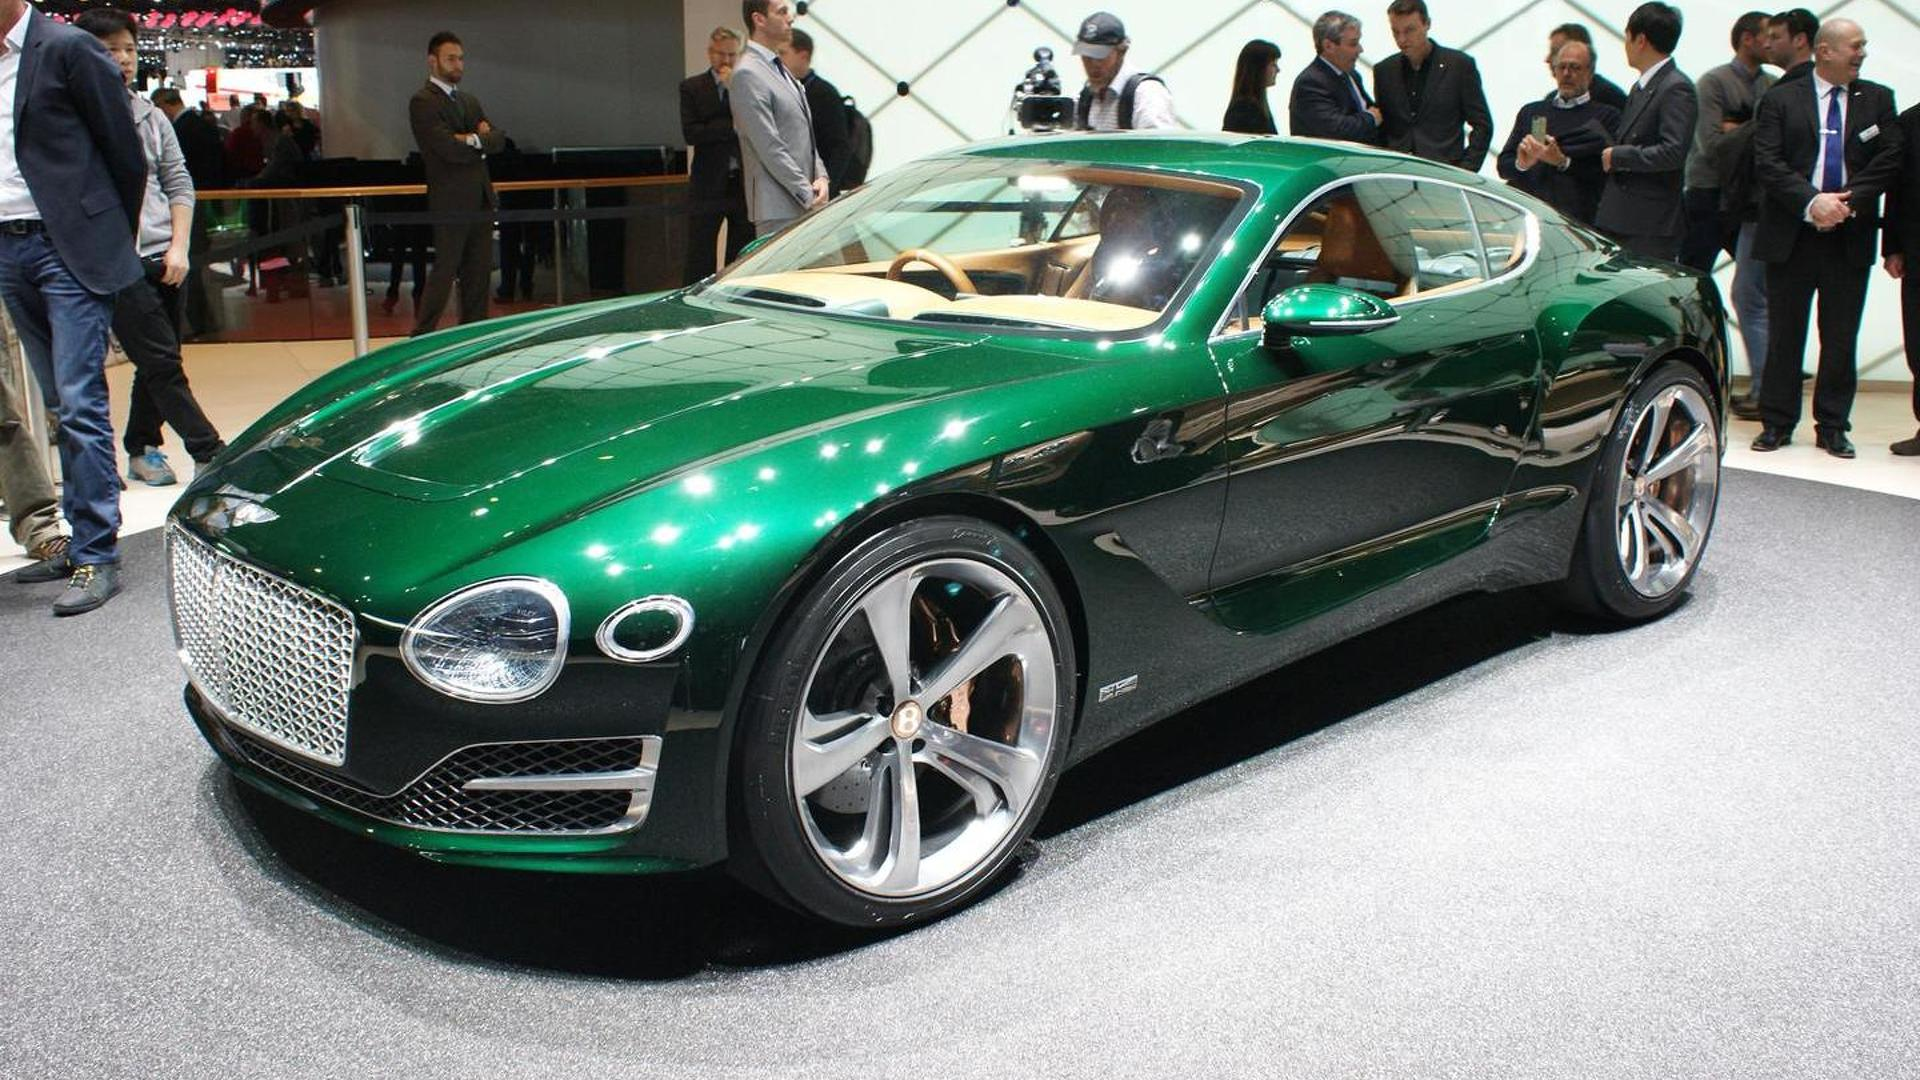 Bentley hints EXP 10 Speed 6 concept will spawn two-seater sports car